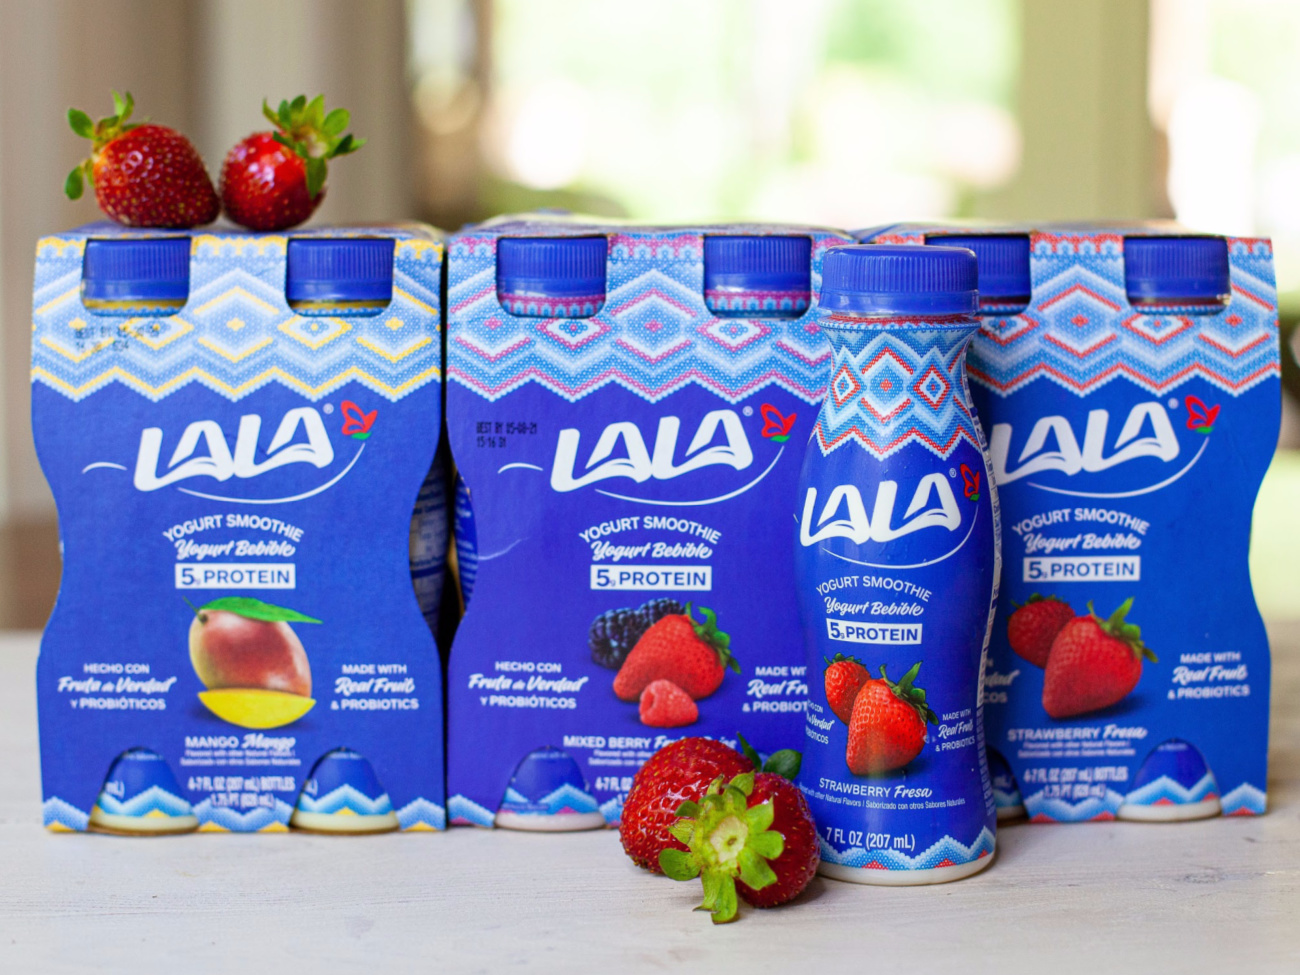 Take Advantage Of Big Savings On Delicious LALA Smoothies At Publix on I Heart Publix